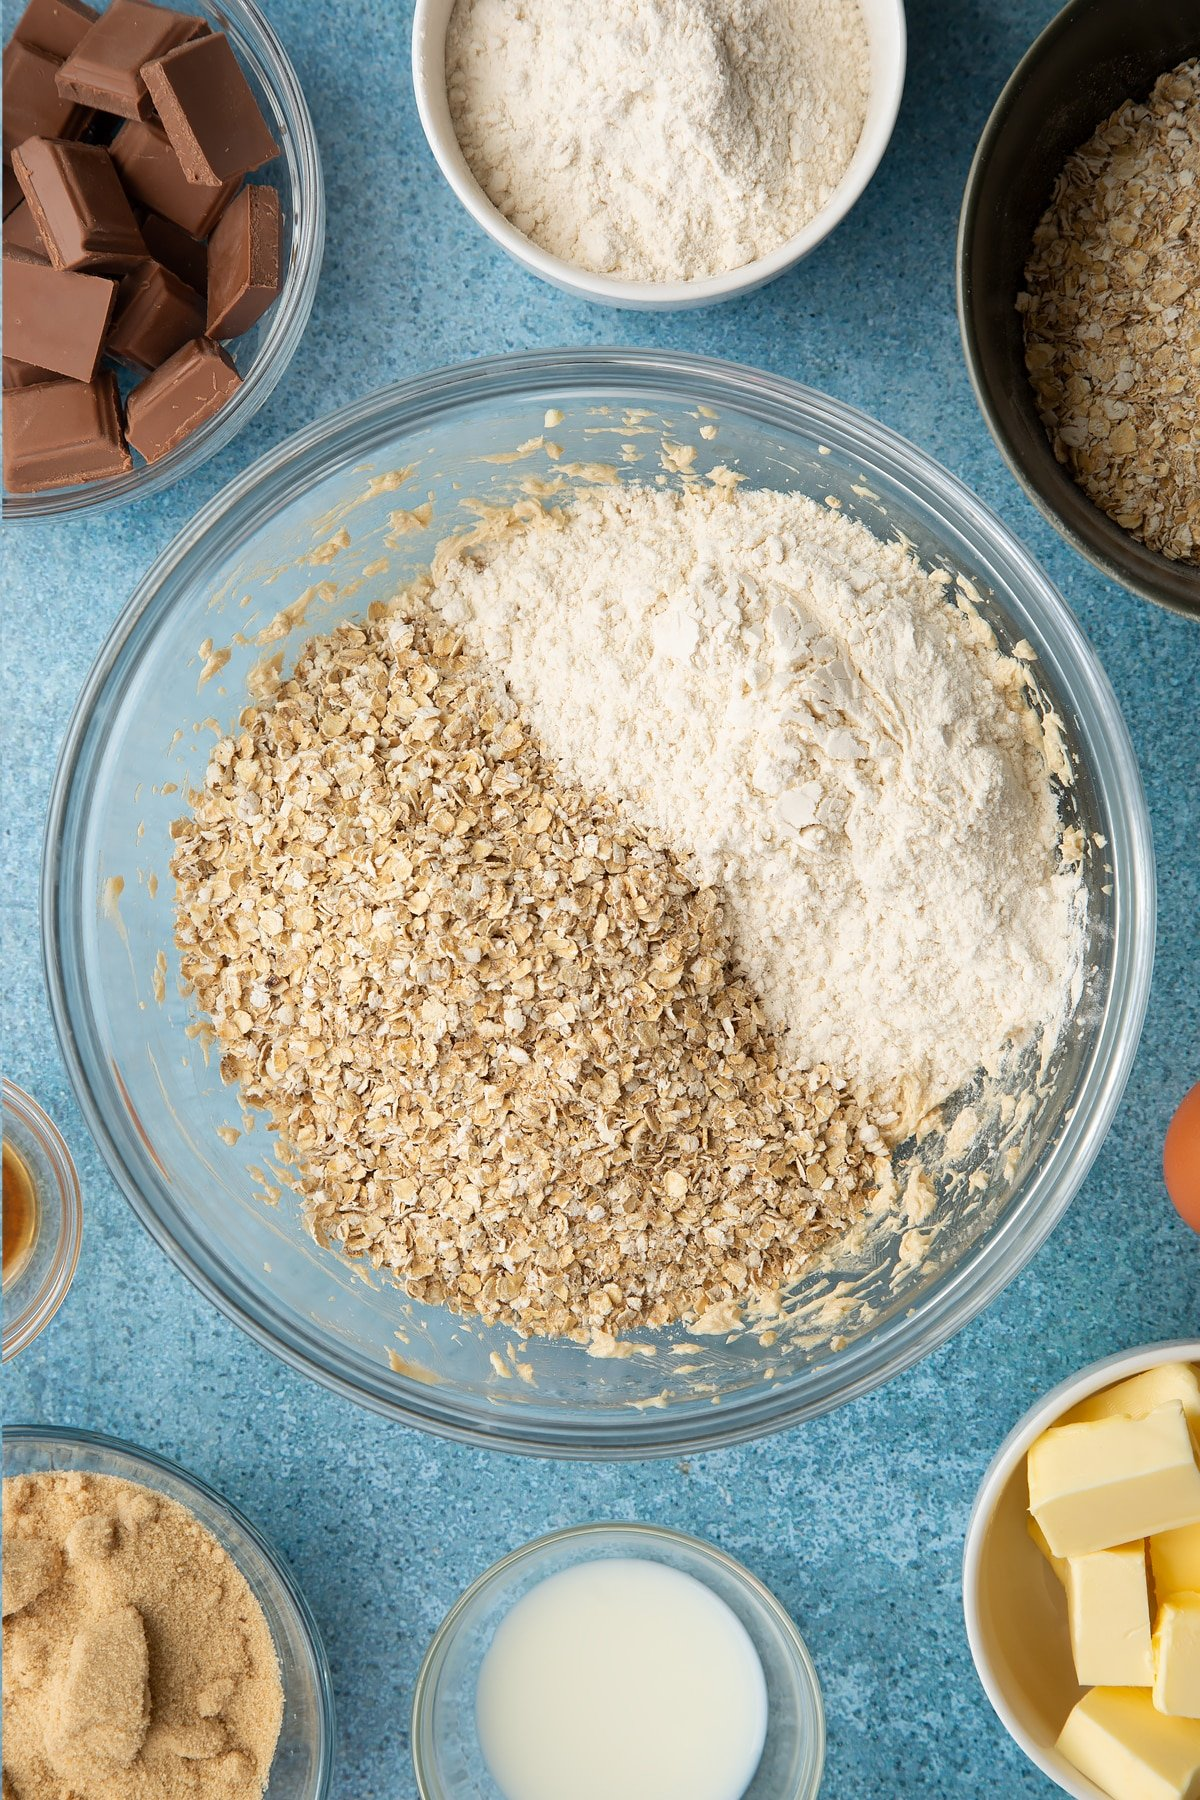 Butter, sugar, eggs, vanilla and milk beaten together in a glass mixing bowl with oats and flour on top. Ingredients to make cookie monster cookies surround the bowl.